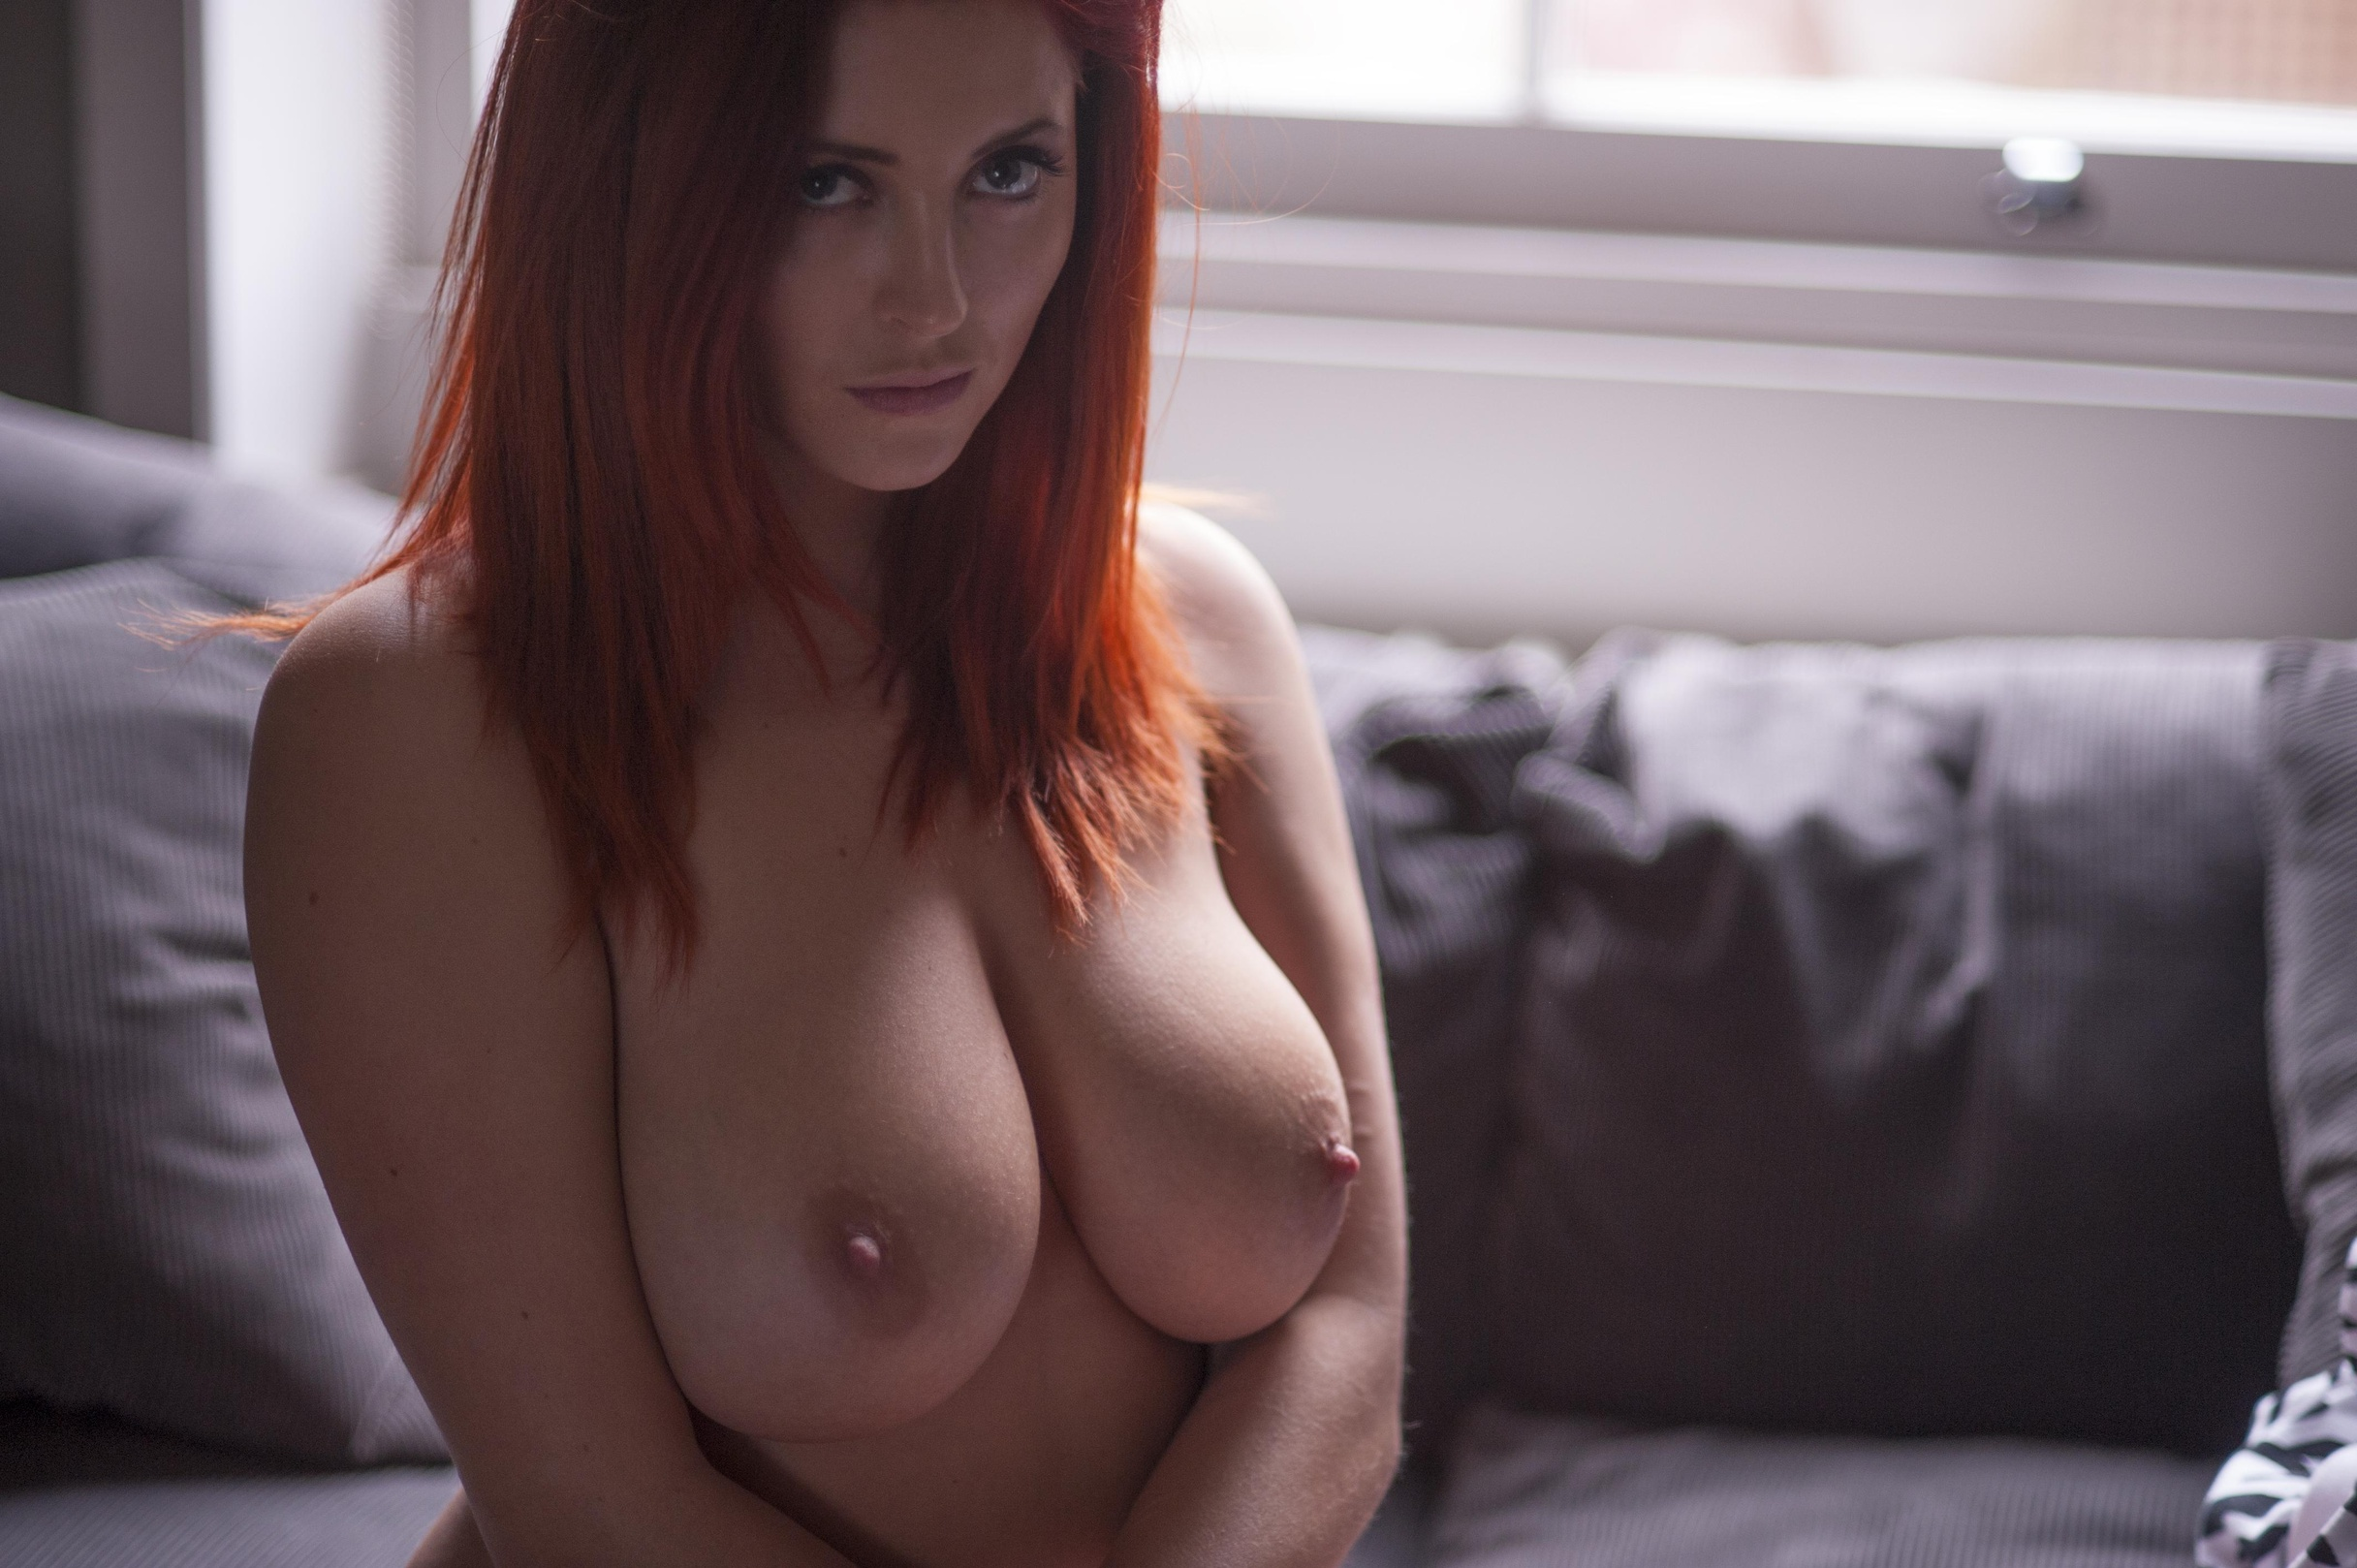 Busty redhead nude pics by bf in bed